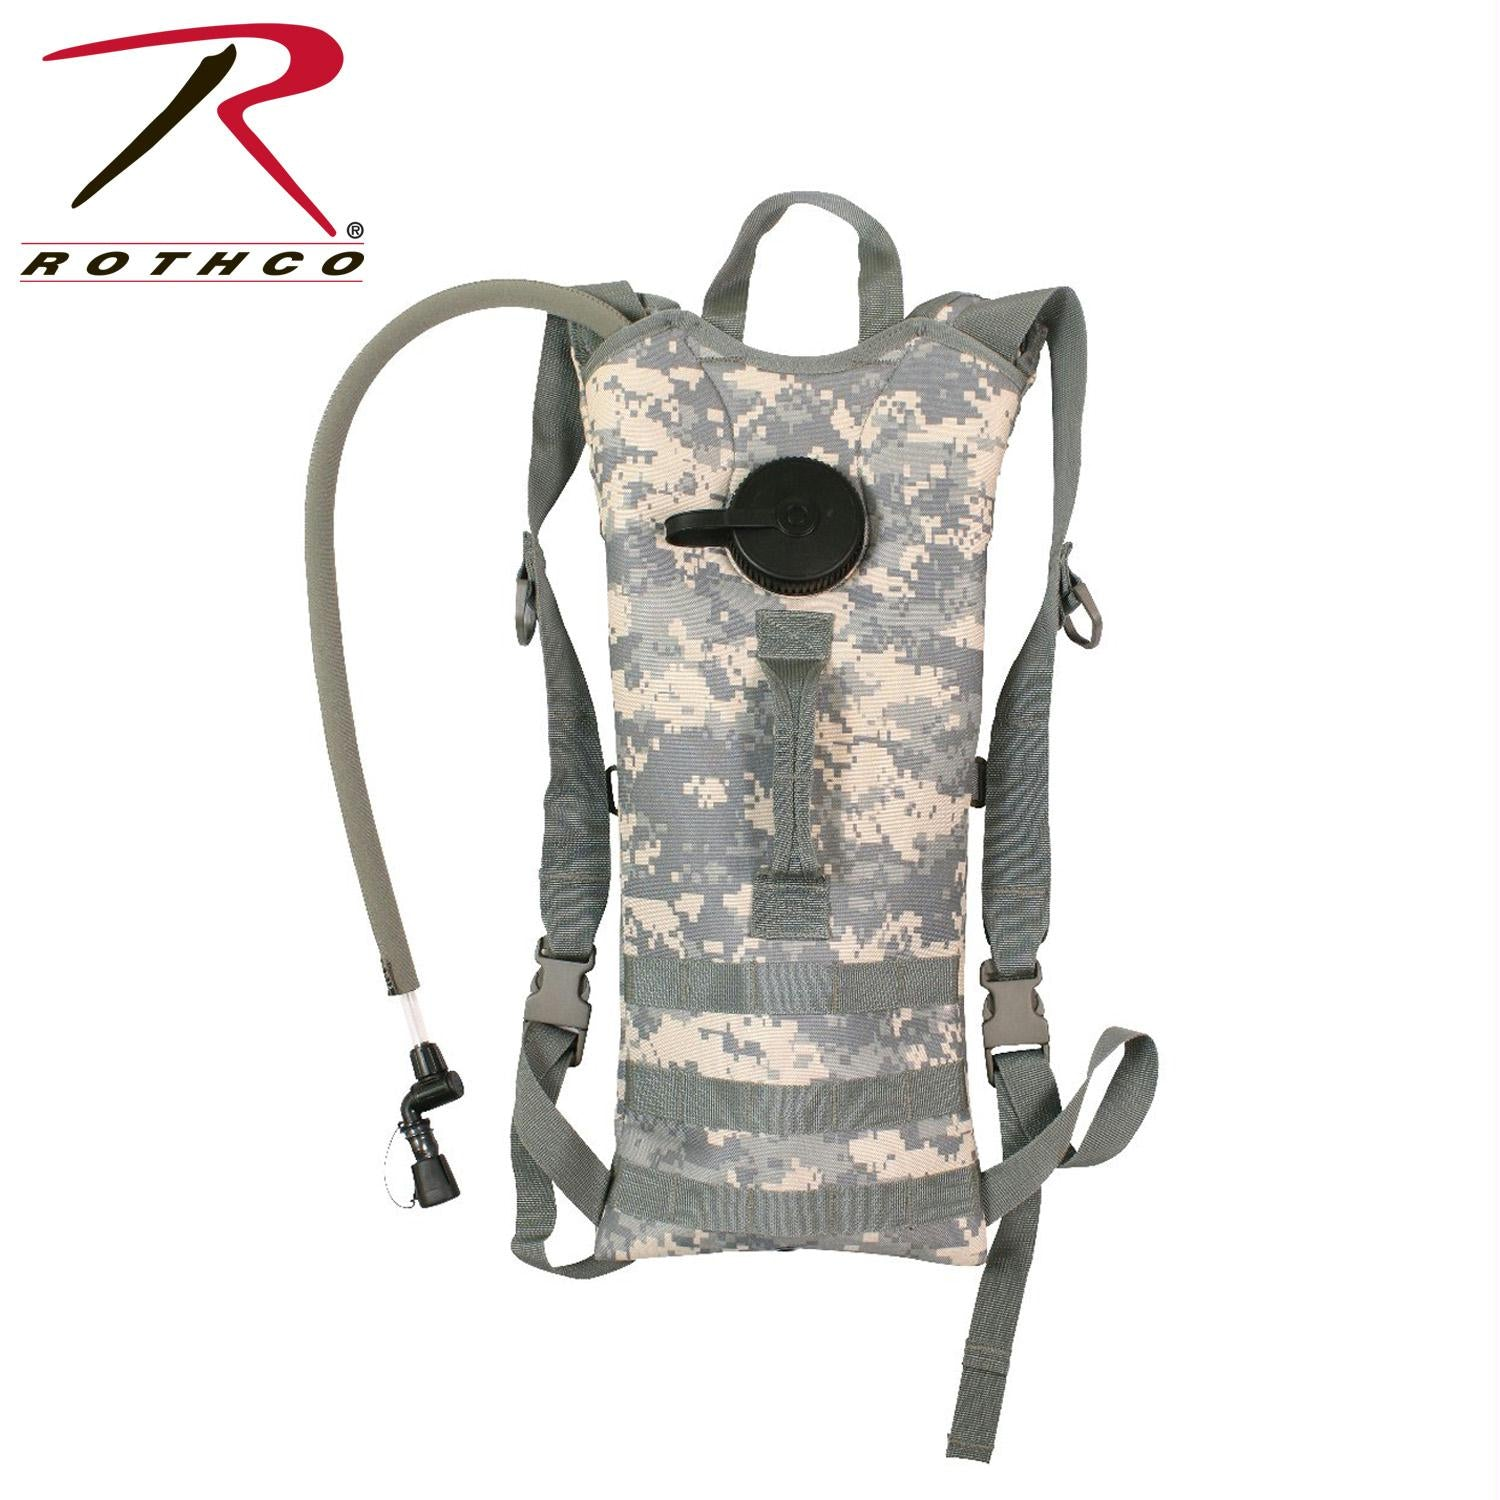 Rothco MOLLE 3 Liter Backstrap Hydration System - ACU Digital Camo